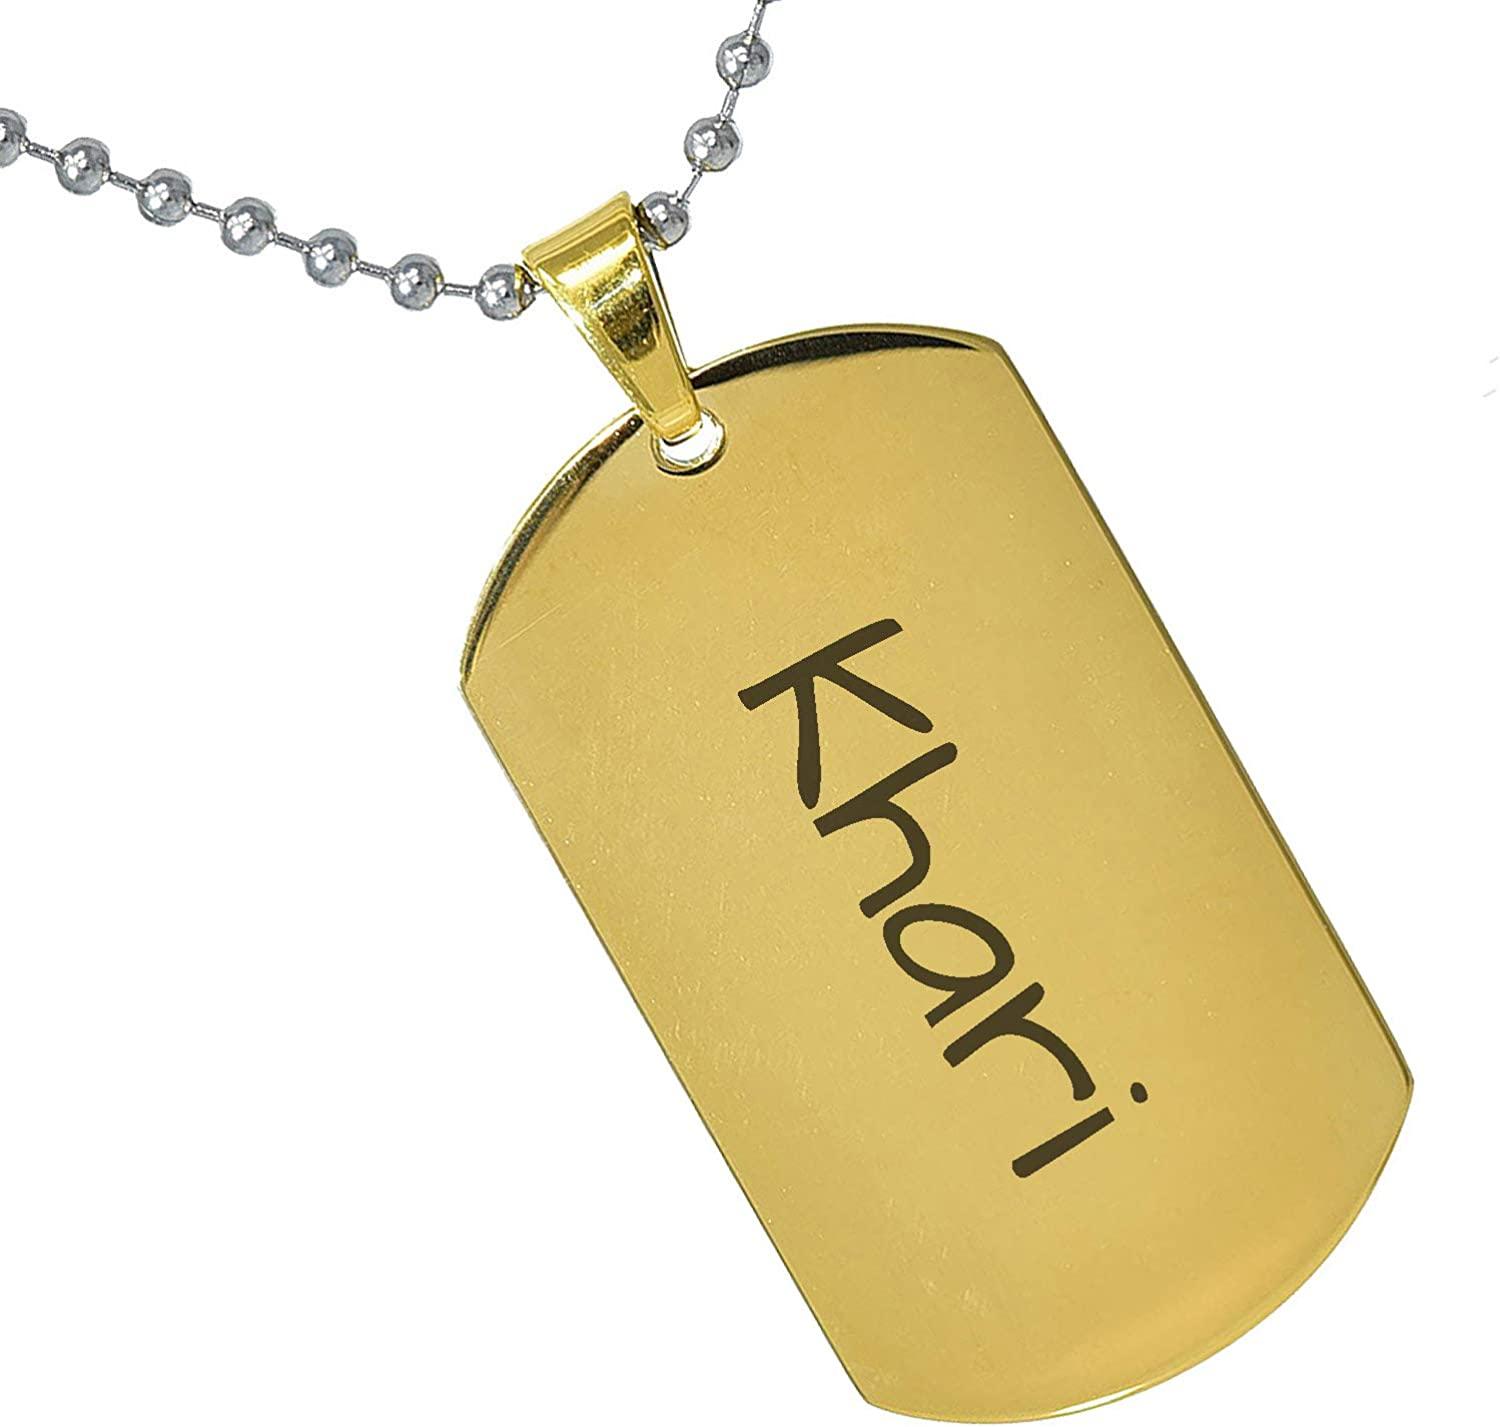 Stainless Steel Silver Gold Black Rose Gold Color Baby Name Khari Engraved Personalized Gifts For Son Daughter Boyfriend Girlfriend Initial Customizable Pendant Necklace Dog Tags 24 Ball Chain